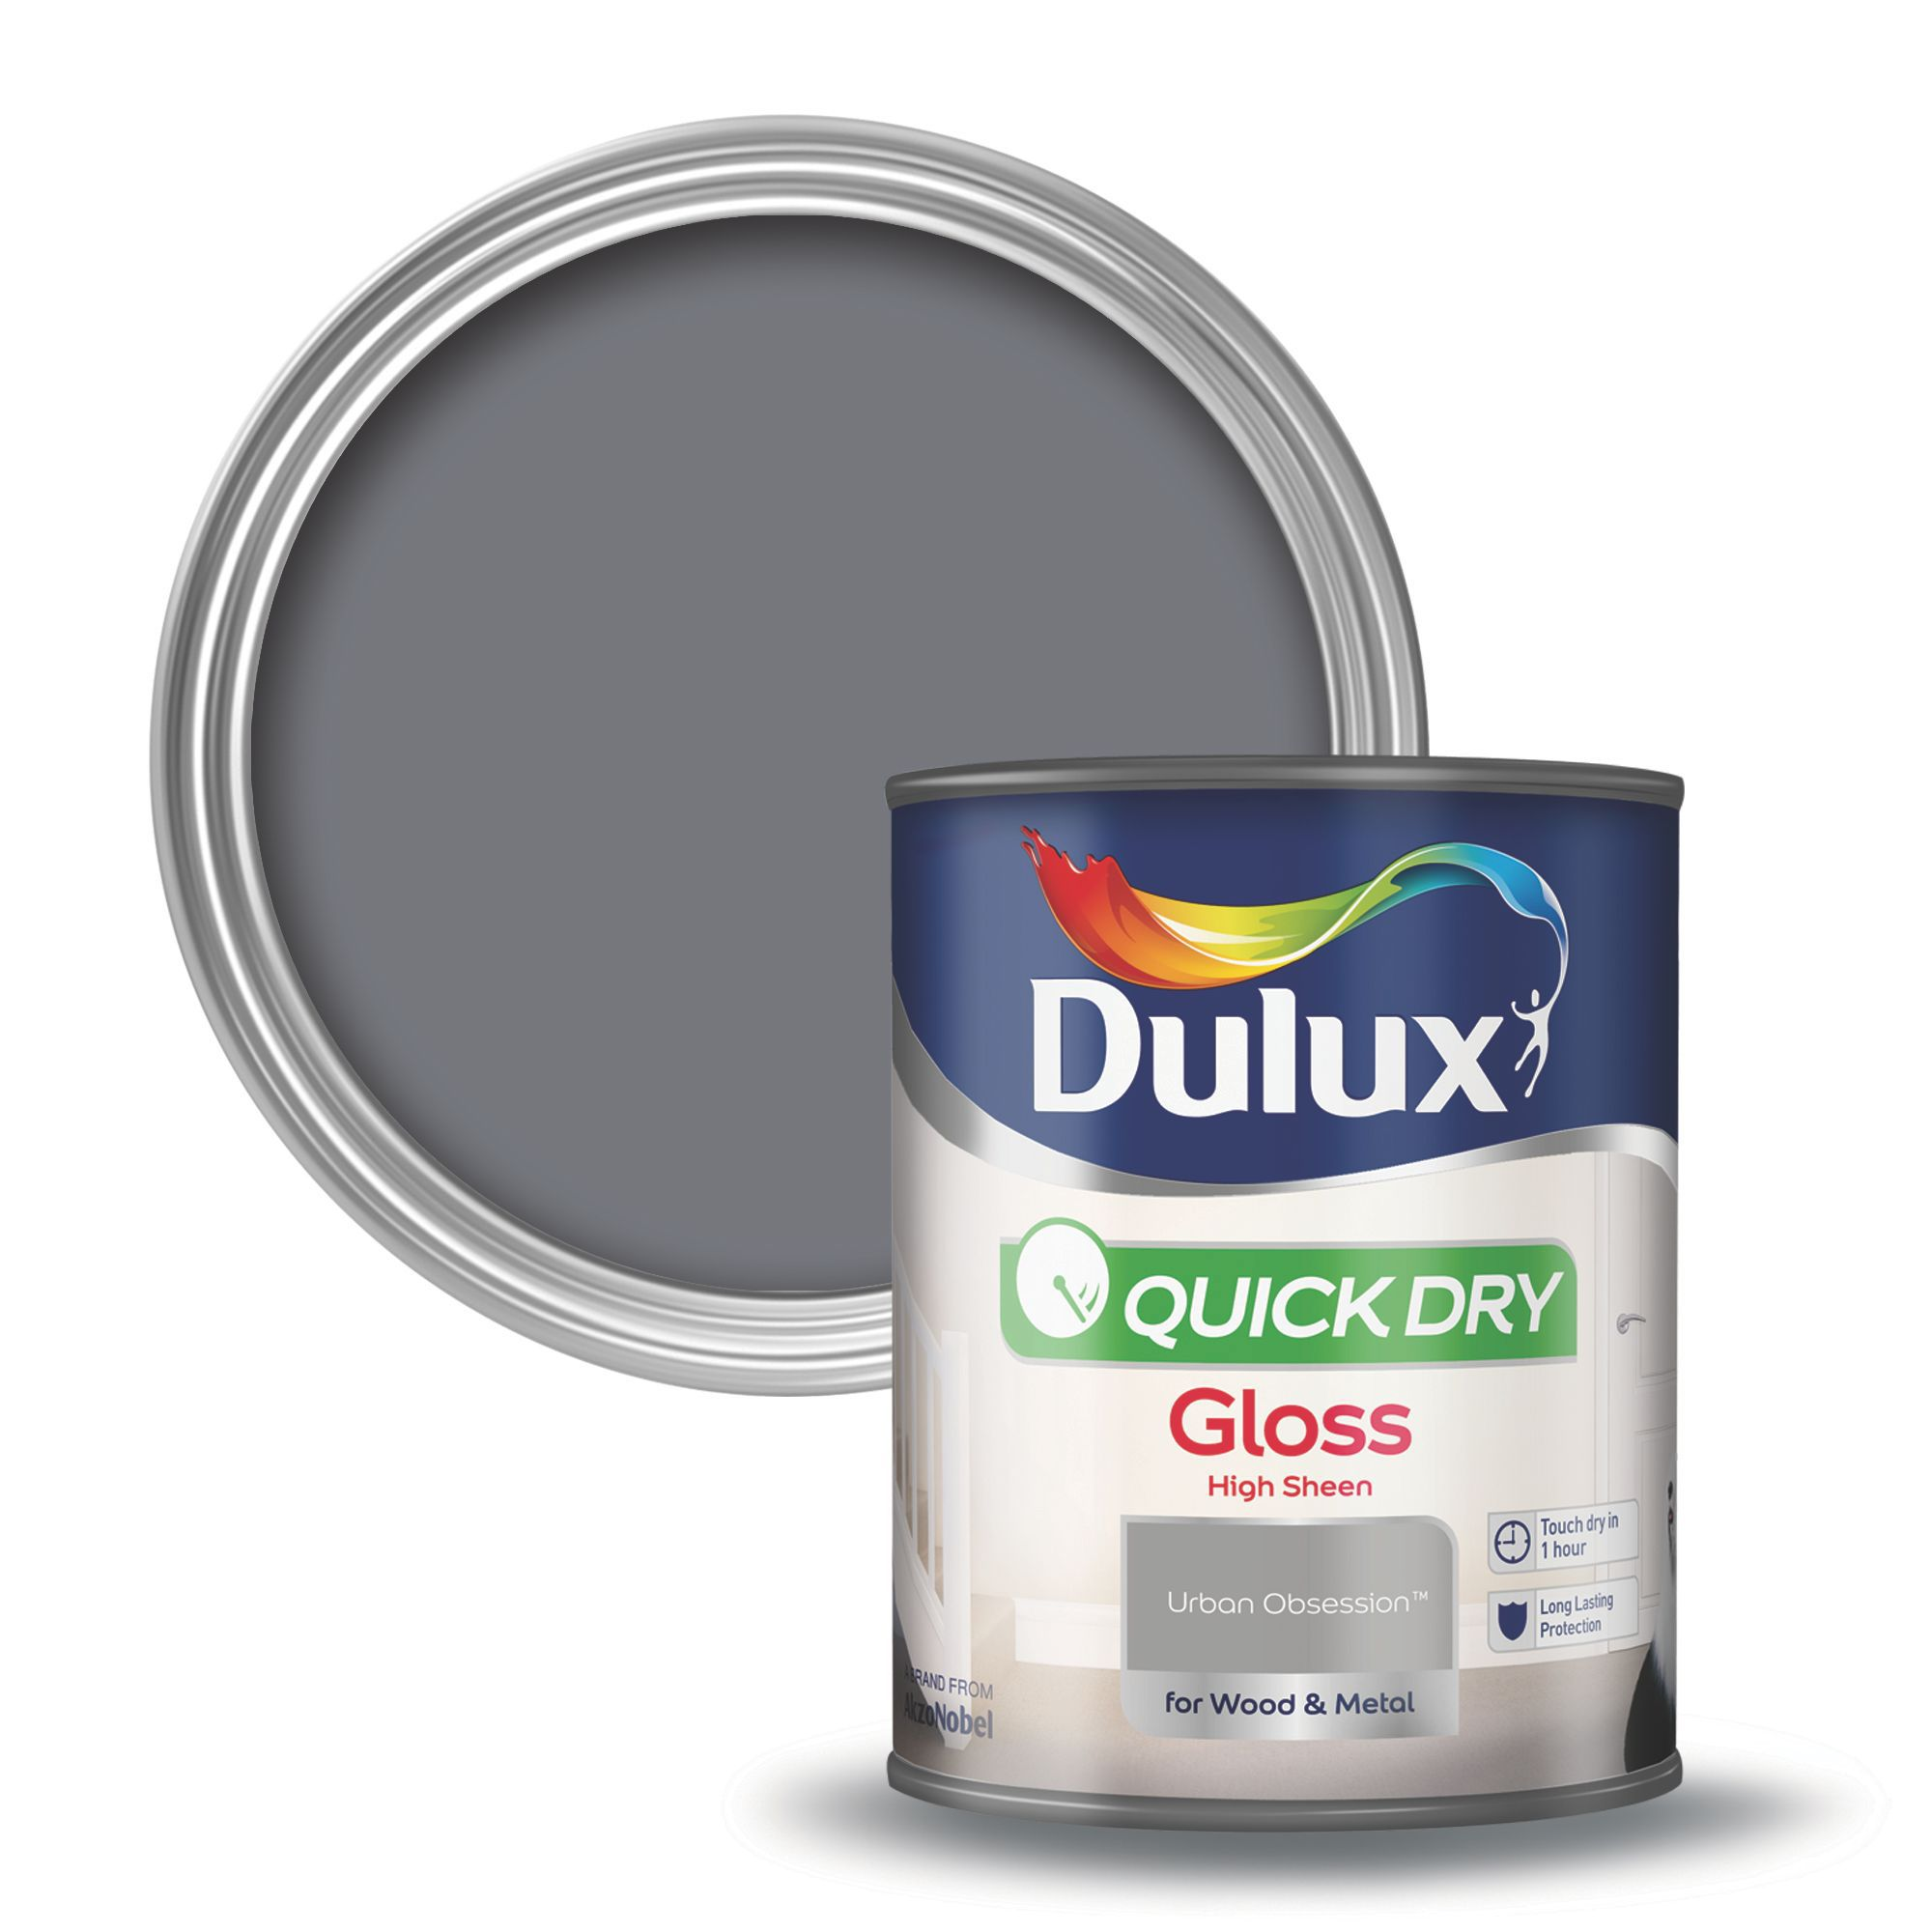 Dulux Interior Urban Obsession Gloss Wood Metal Paint 750ml Departments Diy At B Q